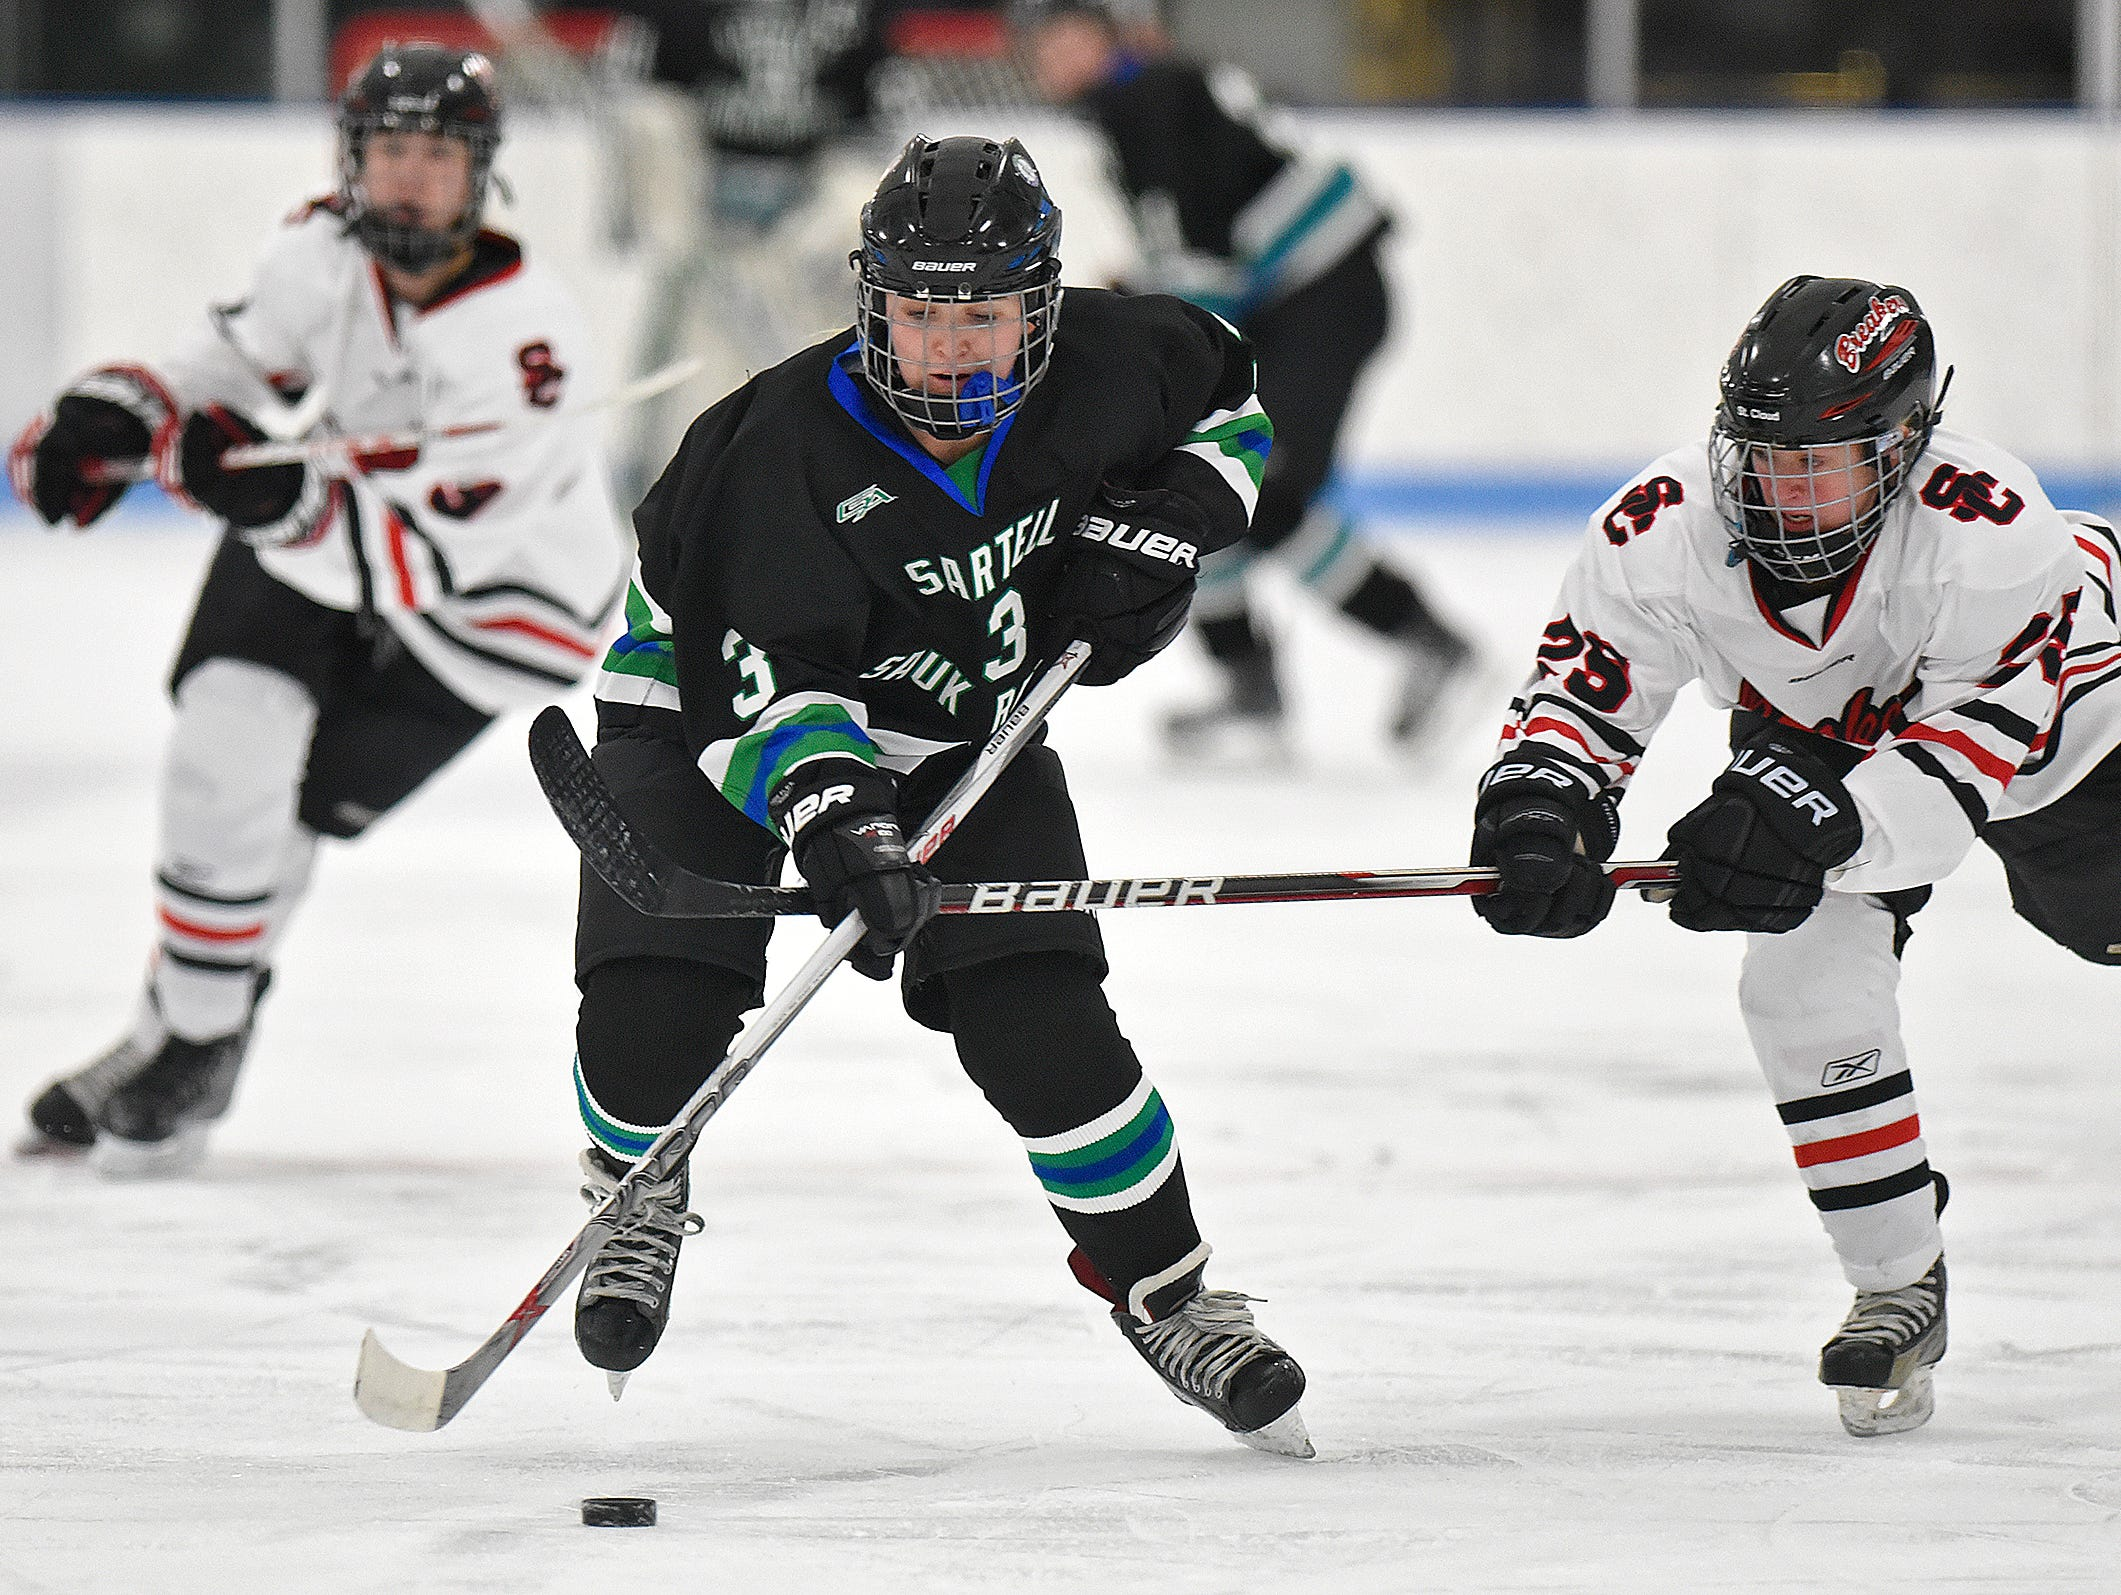 Bria Fern skates with the puck for Sartell/Sauk Rapids during the first period of Thursday's game against the Icebreakers at the MAC in St. Cloud.